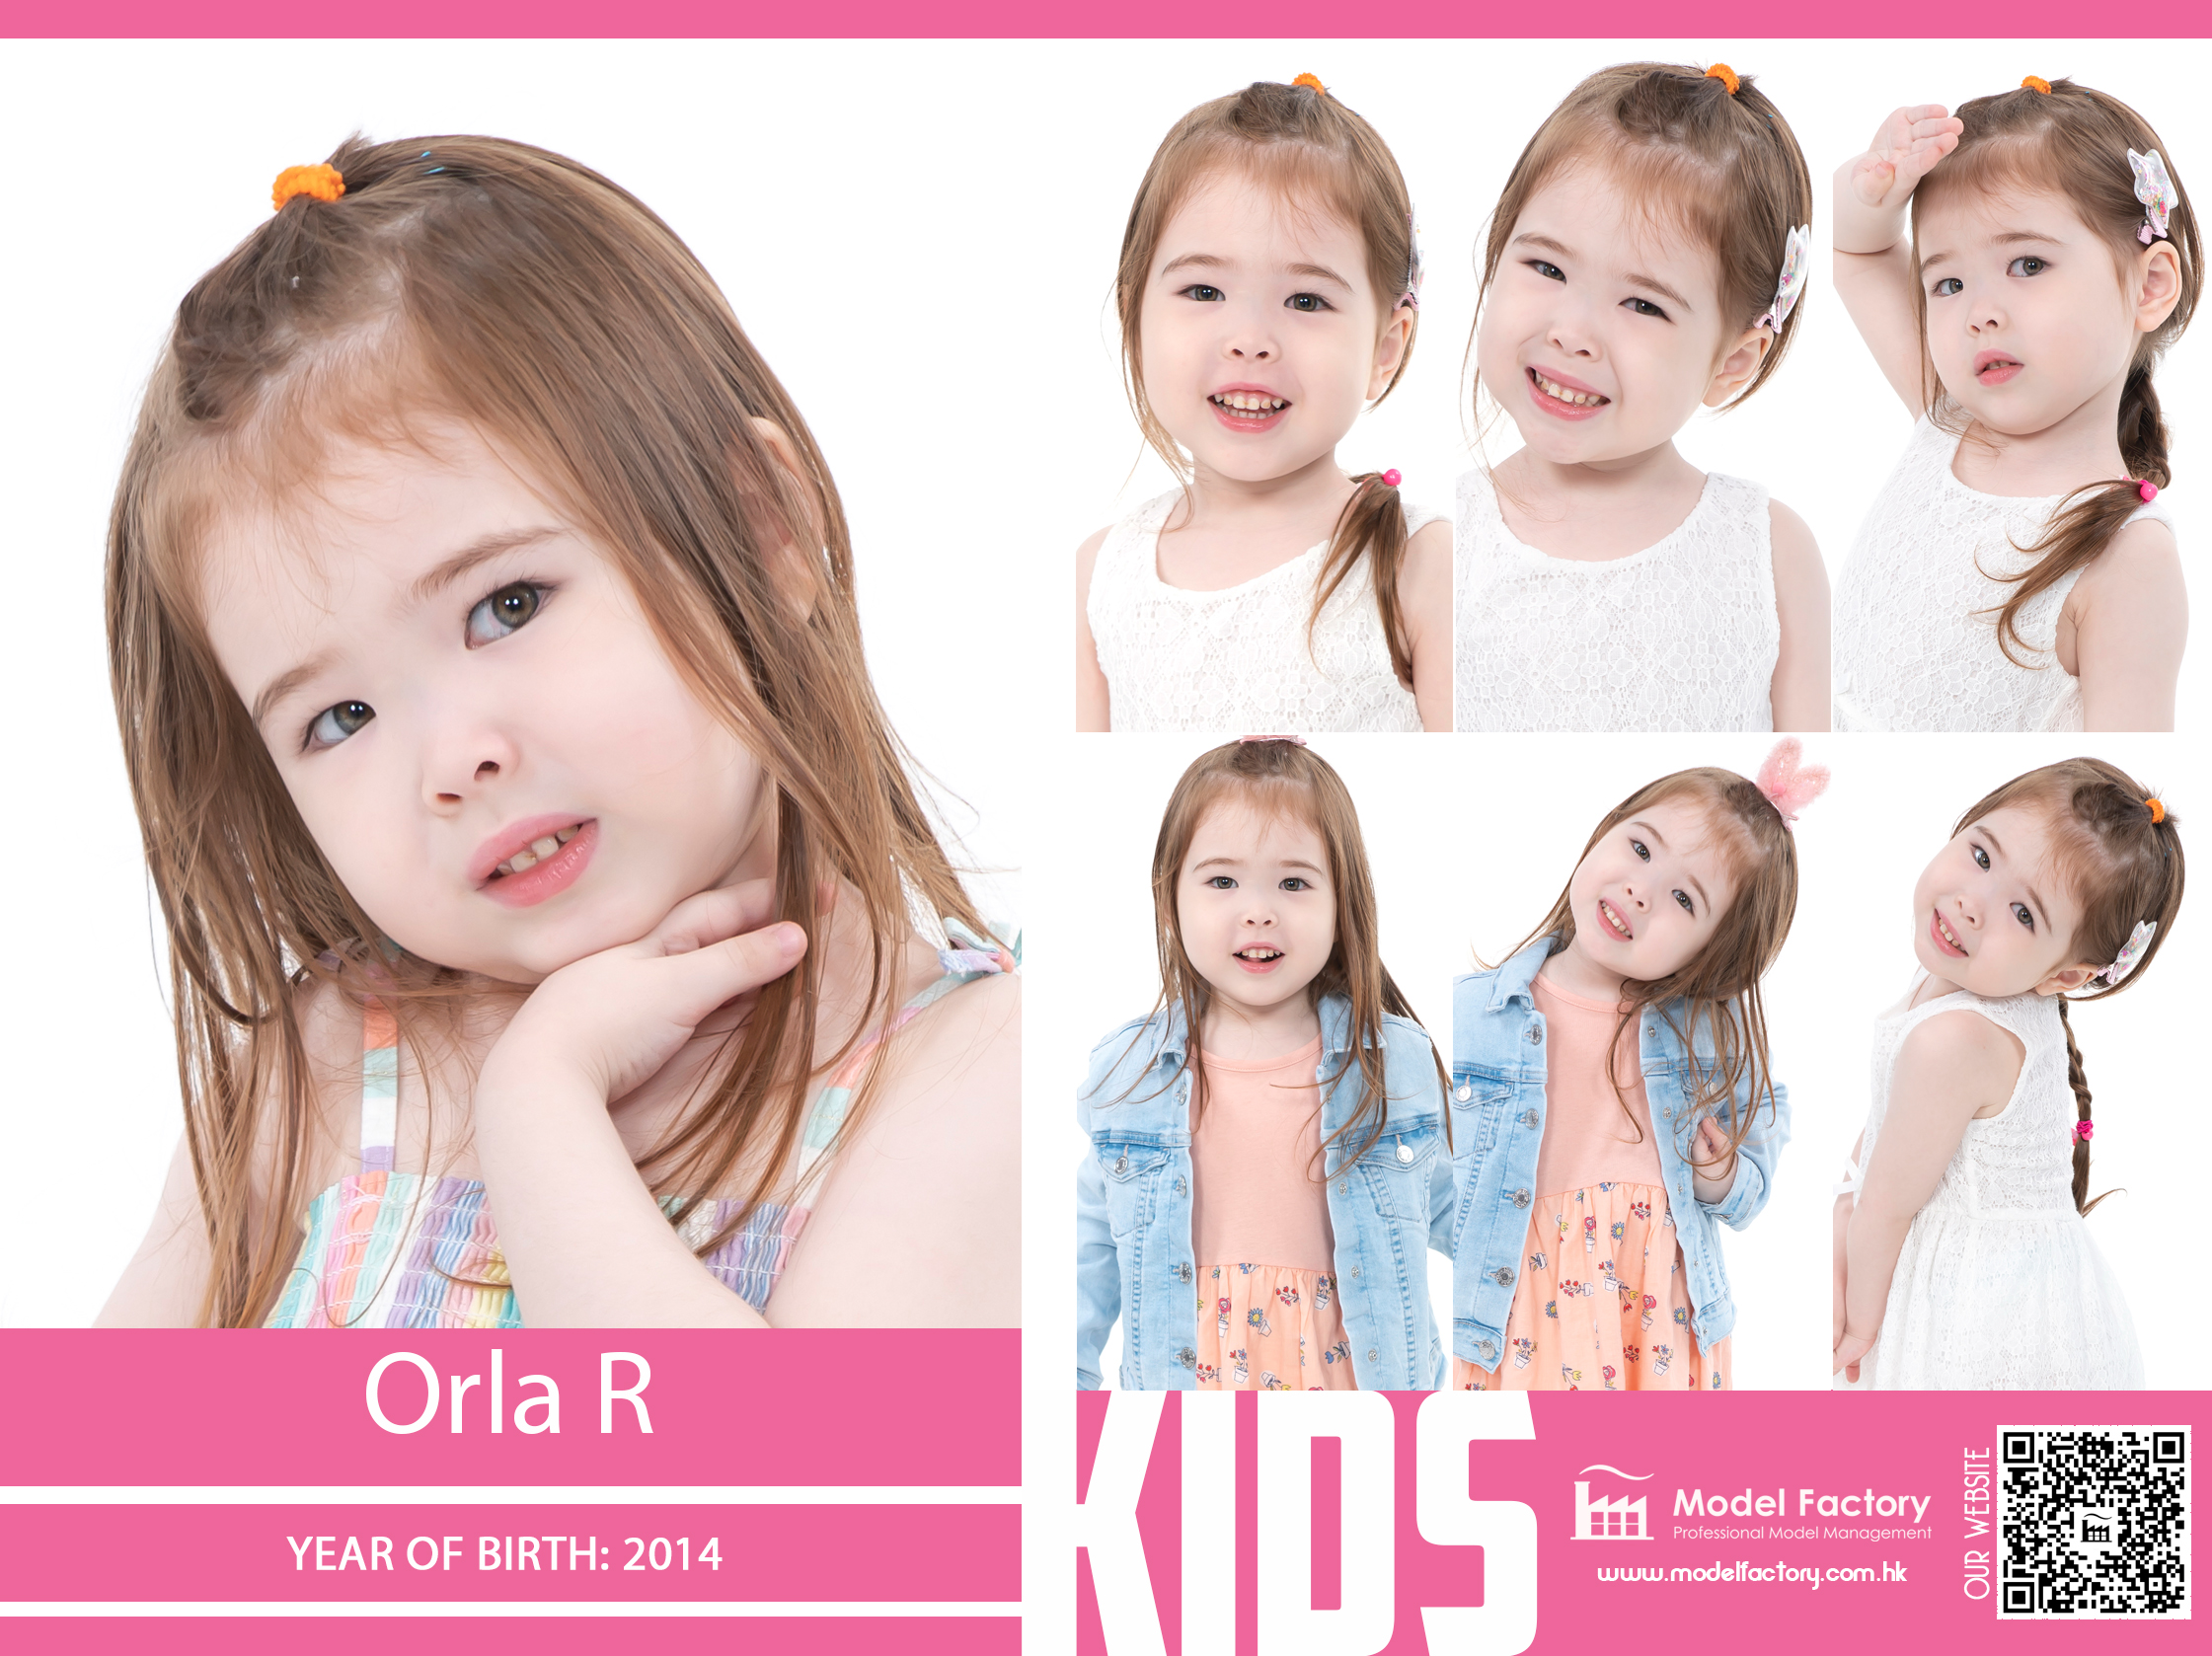 Model Factory Caucasian Kids Orla R